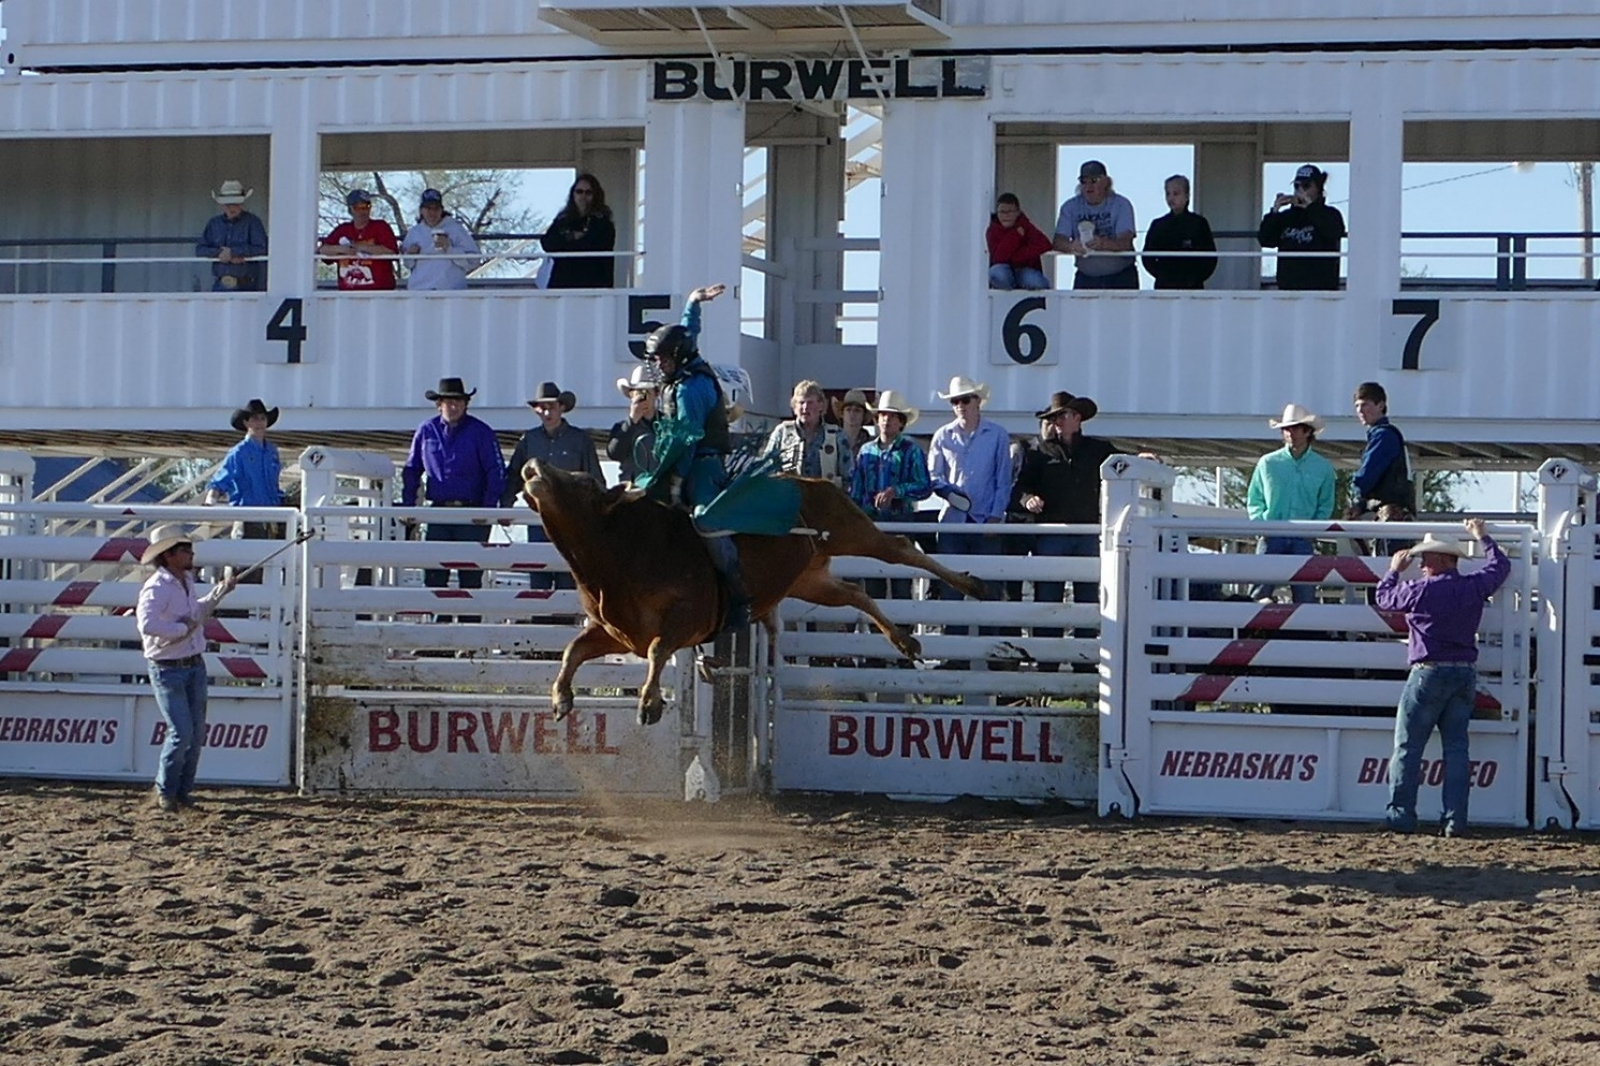 Locals perform well as high school rodeo season starts